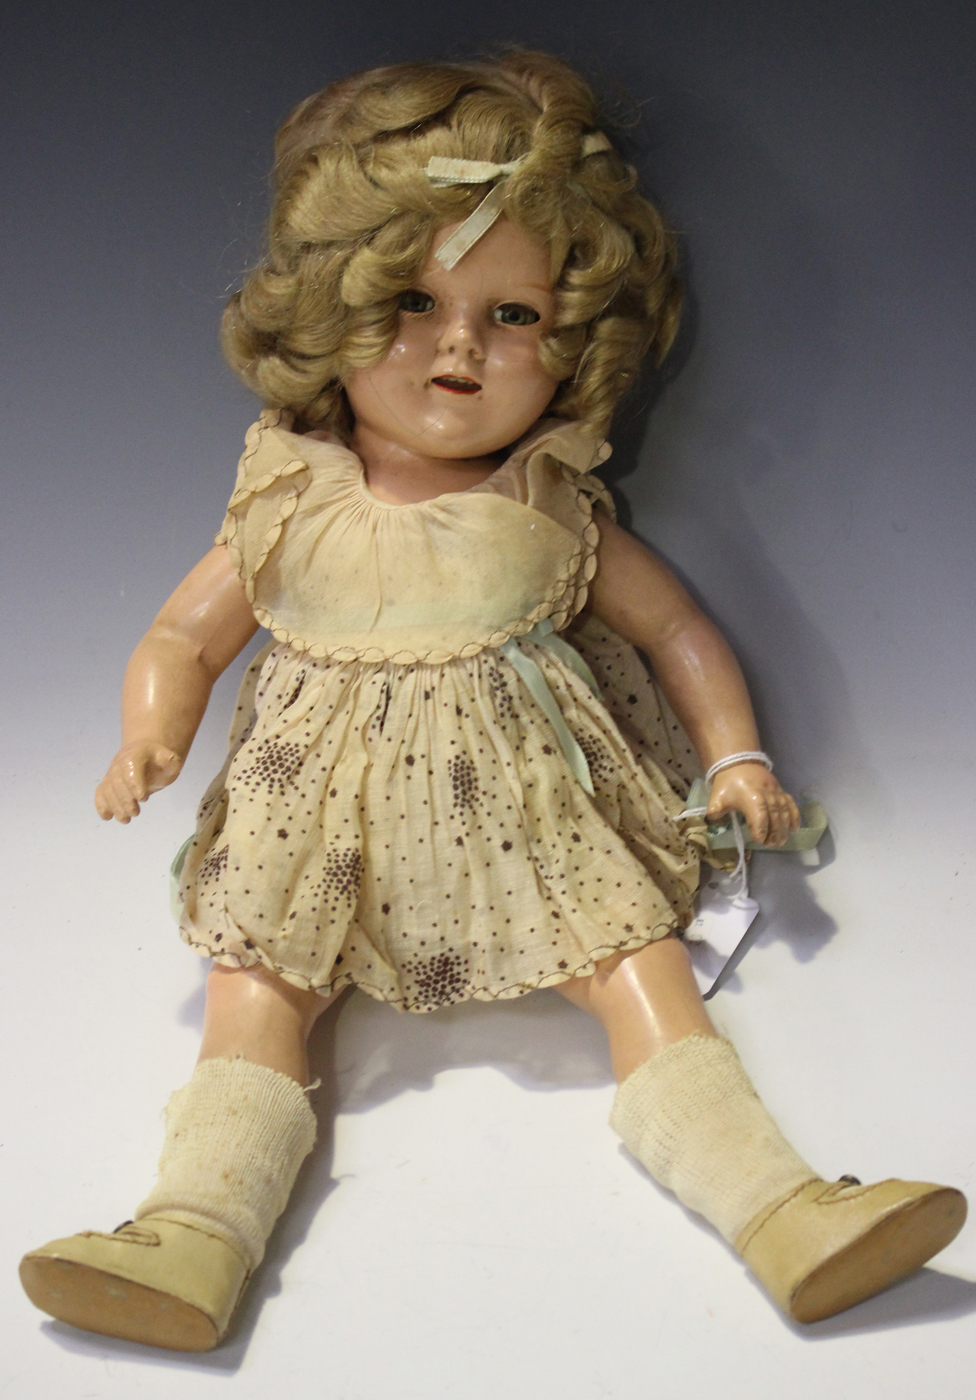 b11a33dc8968 A Shirley Temple composition doll with blonde hair, closing brown eyes,  open mouth showing upper tee